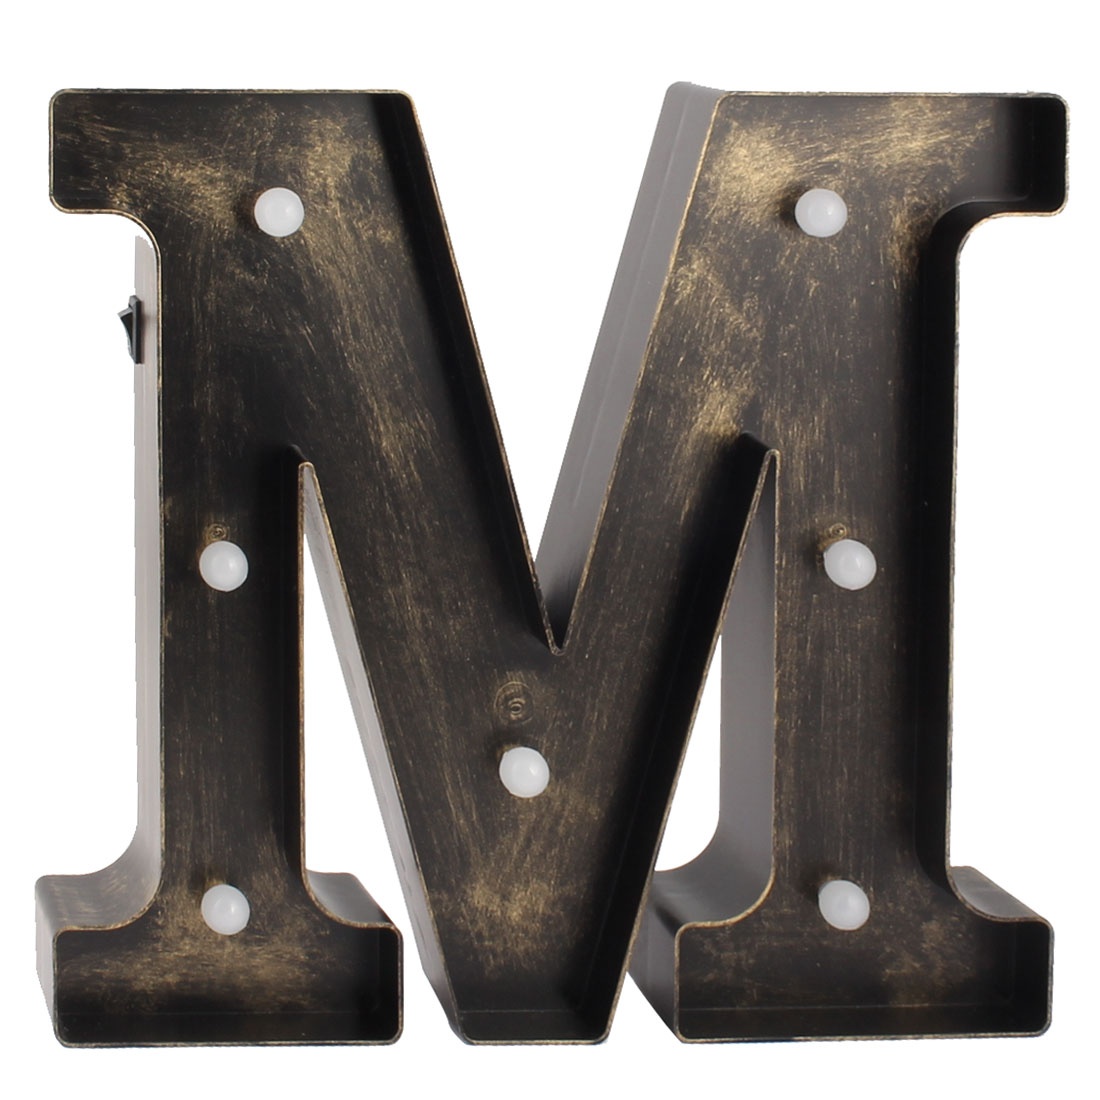 Coffee Shop Plastic English M Letter Alphabet DIY Hanging LED Light Bronze Tone - image 1 of 1